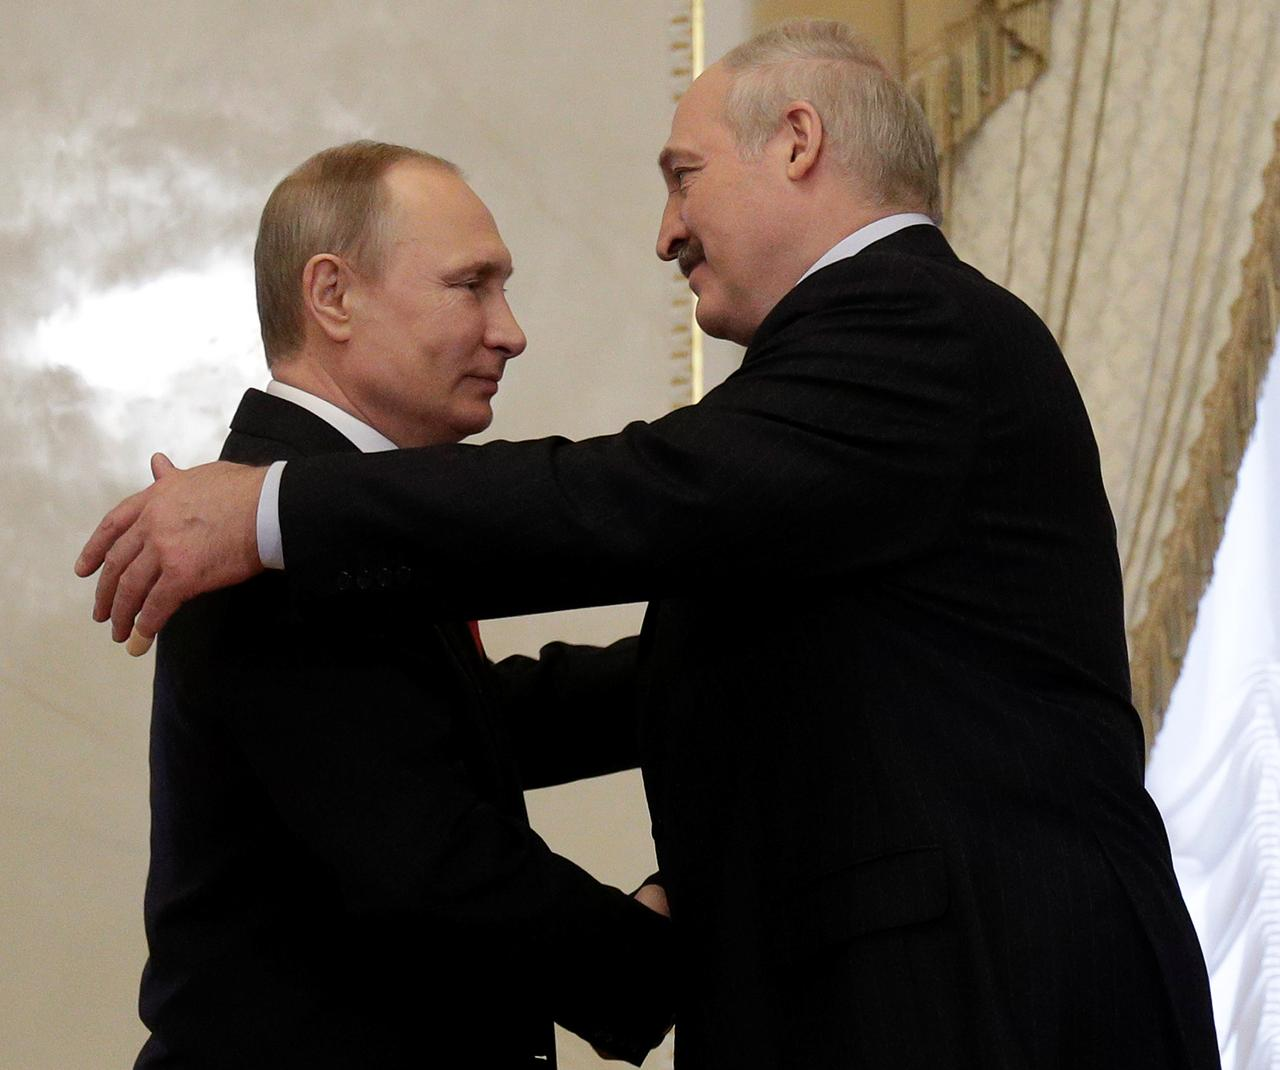 Belarus says russia promises new loans of over 1 billion russian president vladimir putin greets belarus president alexander lukashenko during their meeting at konstantin palace in st petersburg russia april 3 kristyandbryce Images